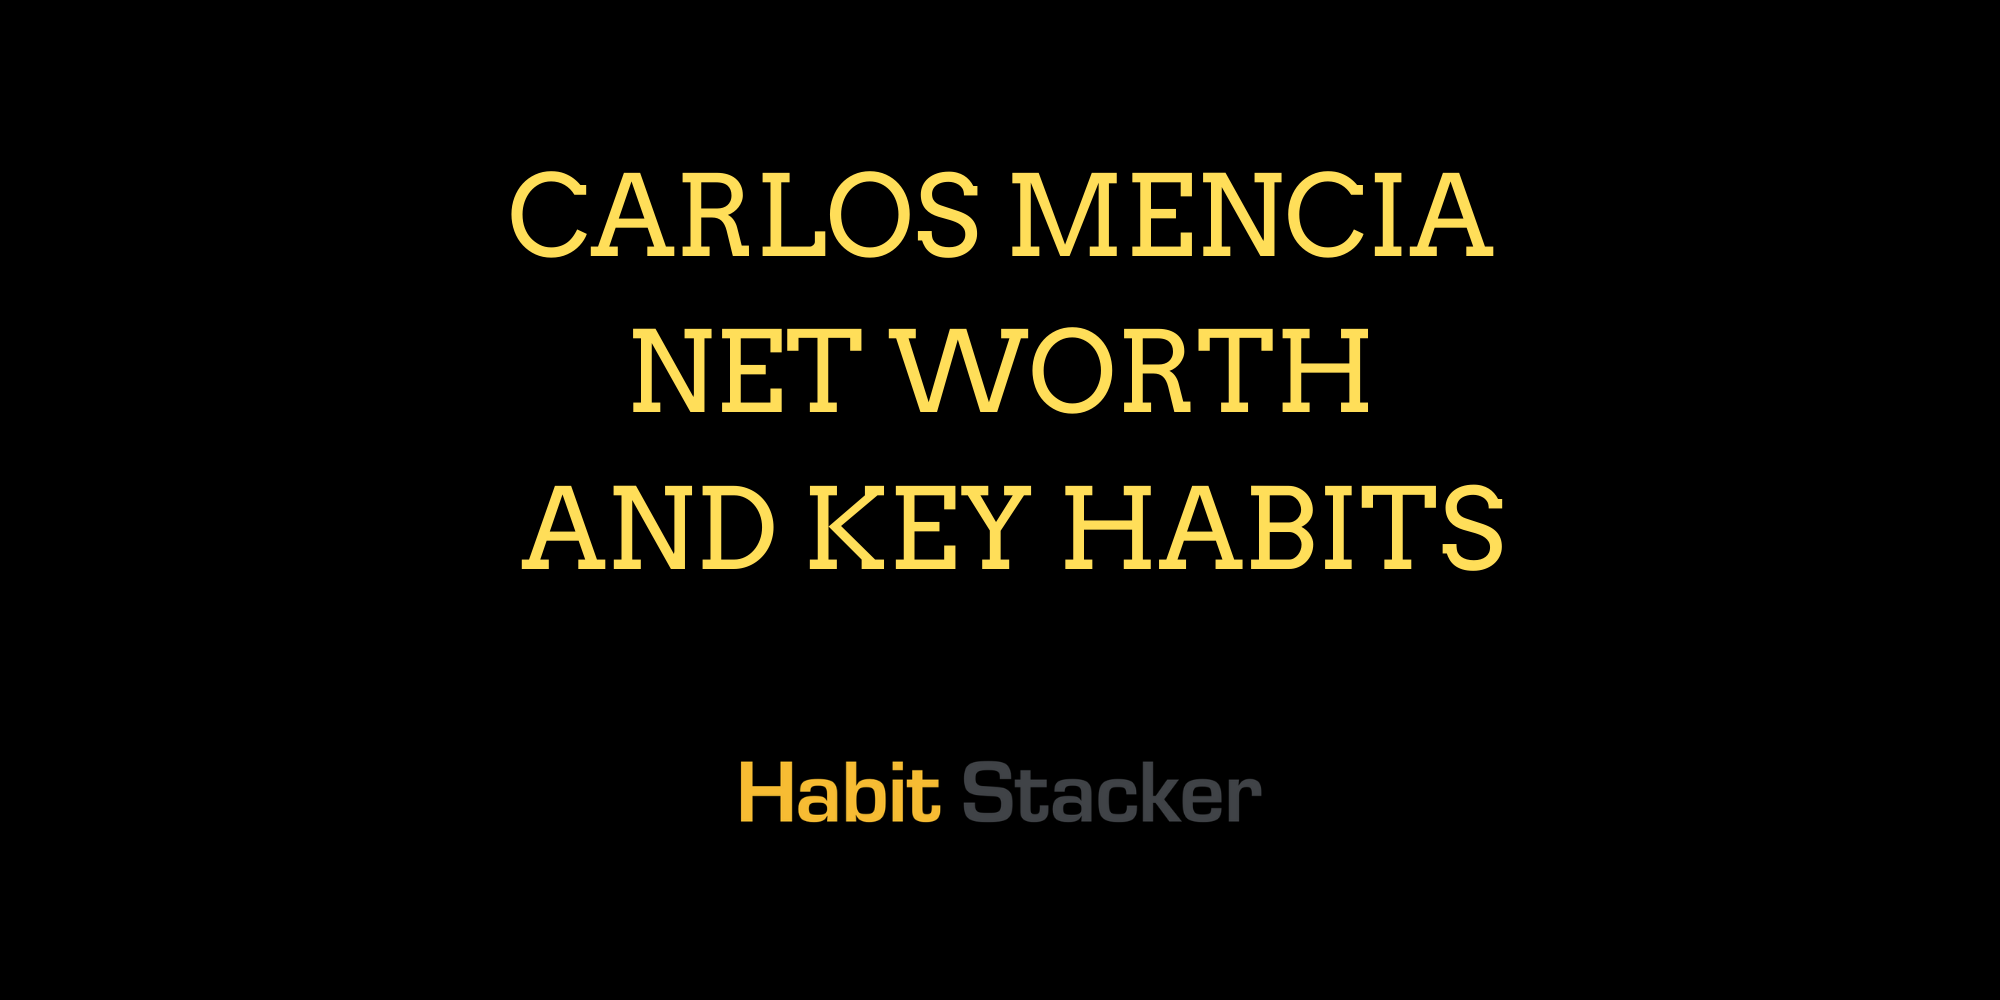 Carlos Mencia Net Worth and Key Habits